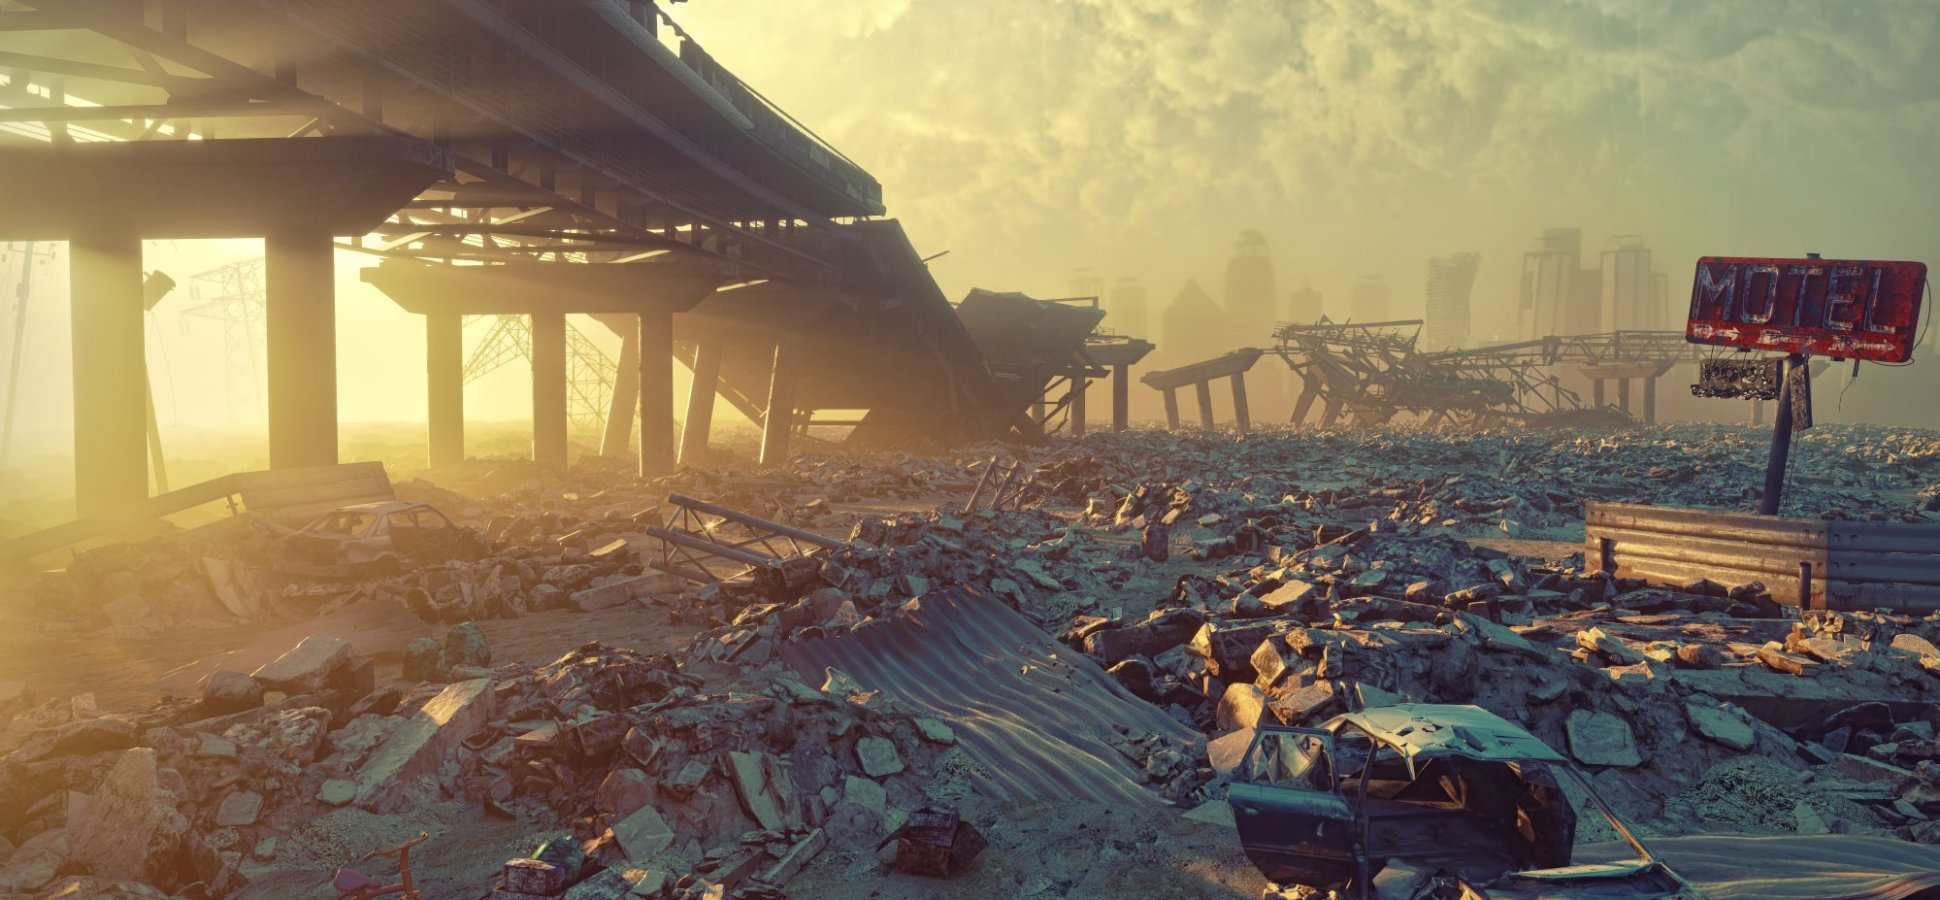 There's a Digital Apocalypse Coming. Take Notice Before It's Too Late